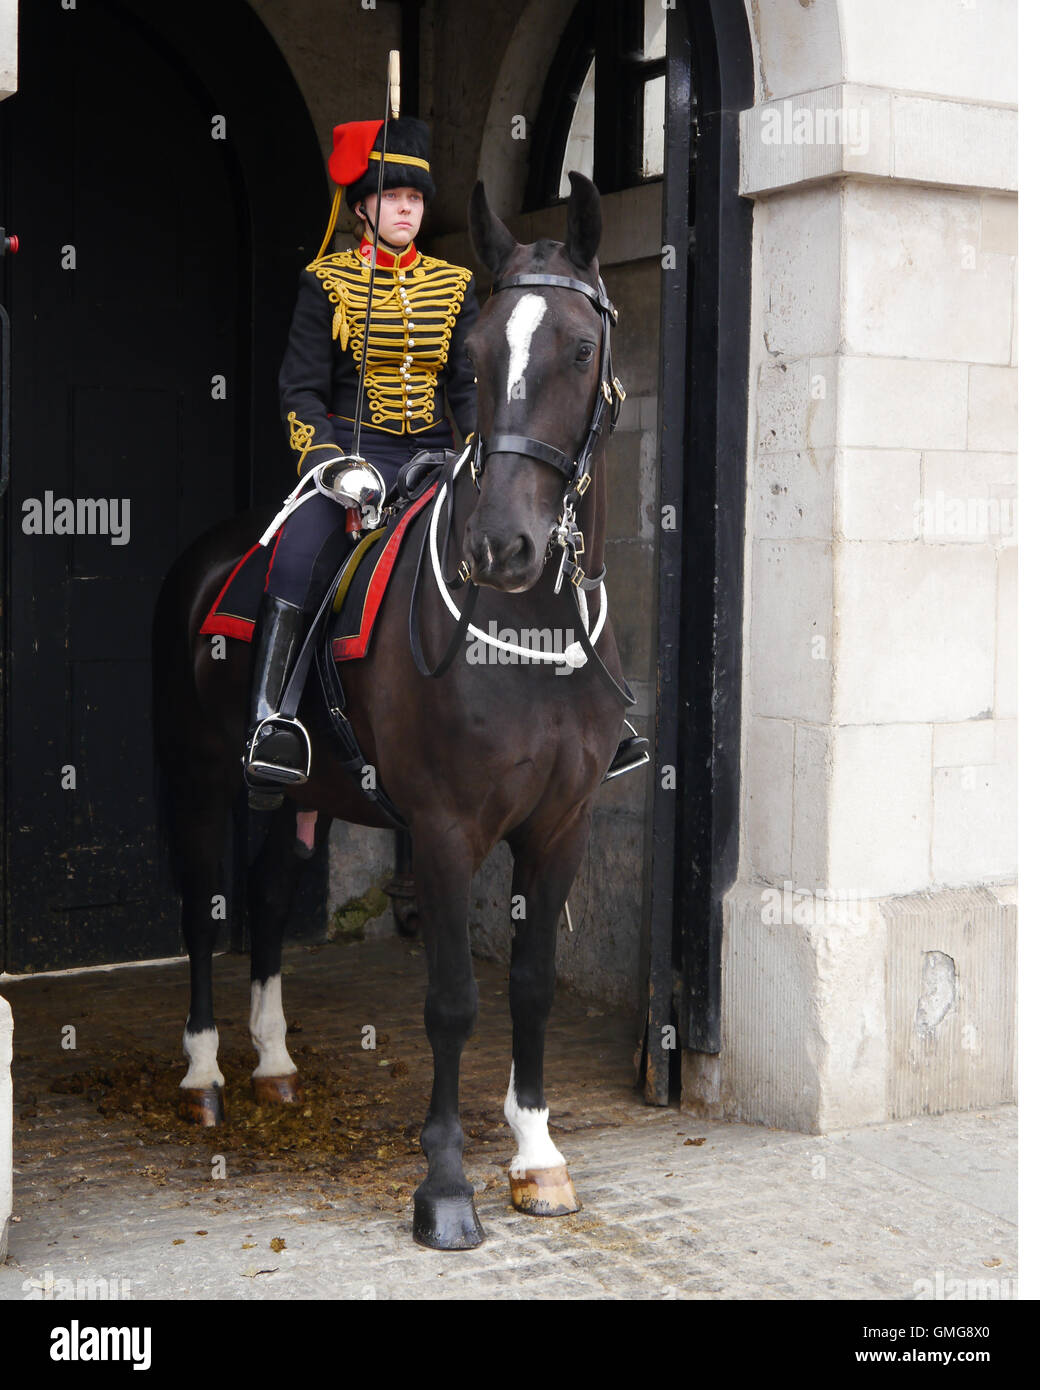 a-female-member-of-kings-troop-royal-horse-artillery-forms-a-part-GMG8X0.jpg